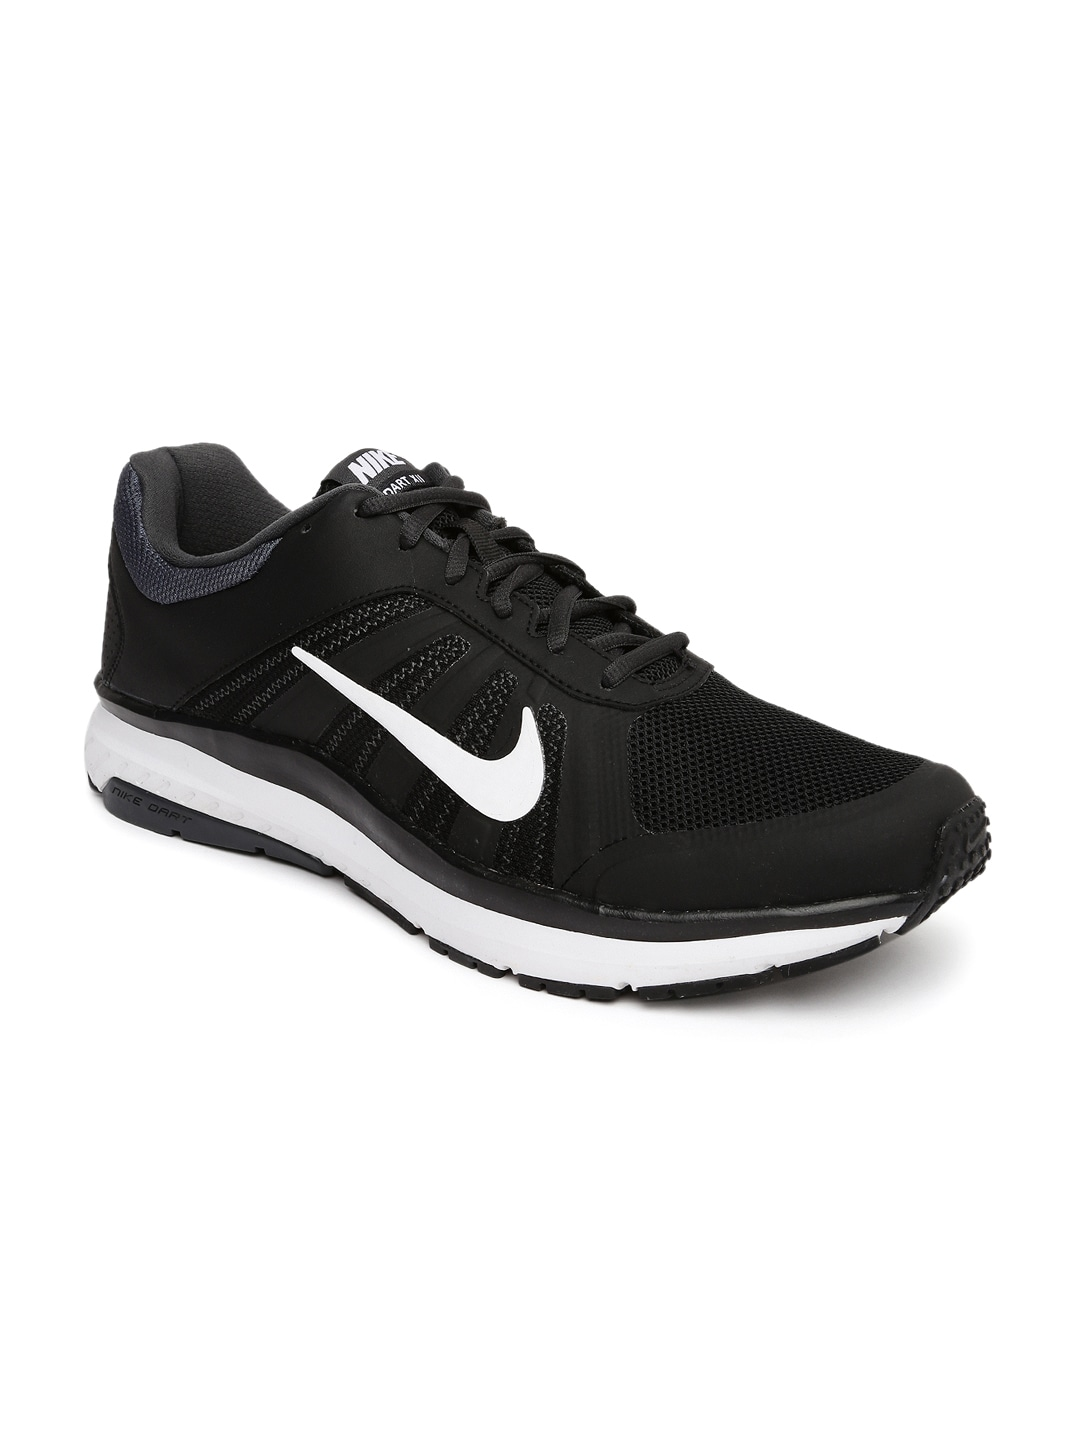 new style 68d26 ab502 Nike Black Shoes - Buy Nike Black Shoes Online in India